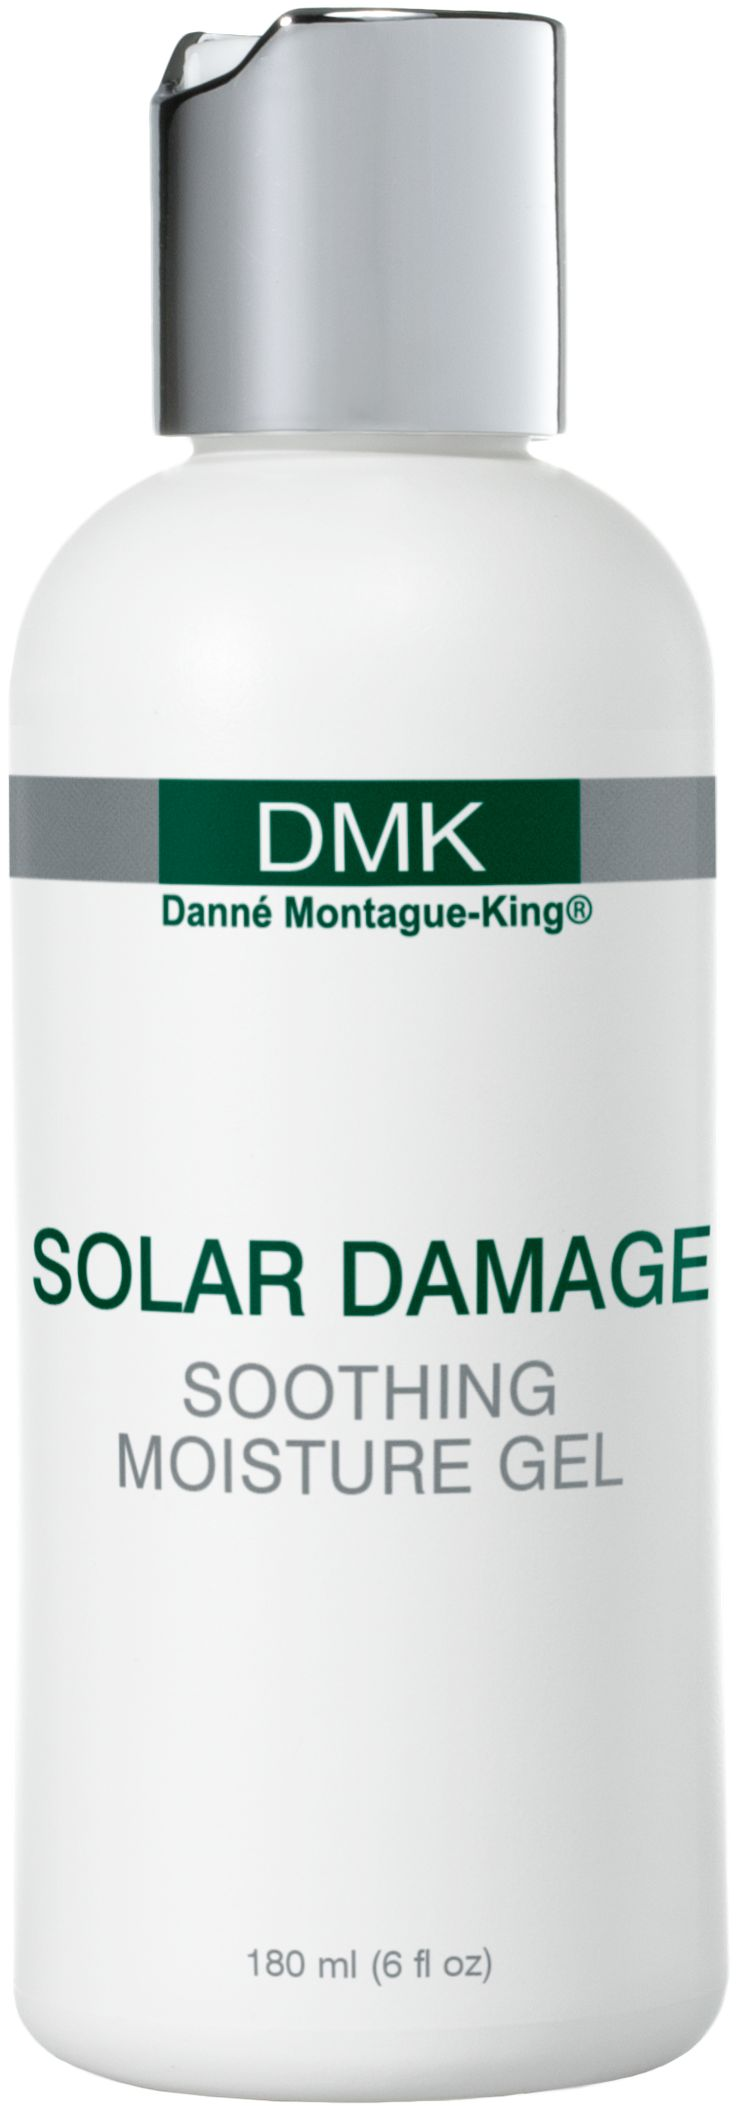 Solar Damage Gel - This gel formulation aims to provide skin with a diet of skin supporting nutrients. This specialised gel moisturiser aims to enhance the natural water barrier and defences of the skin.